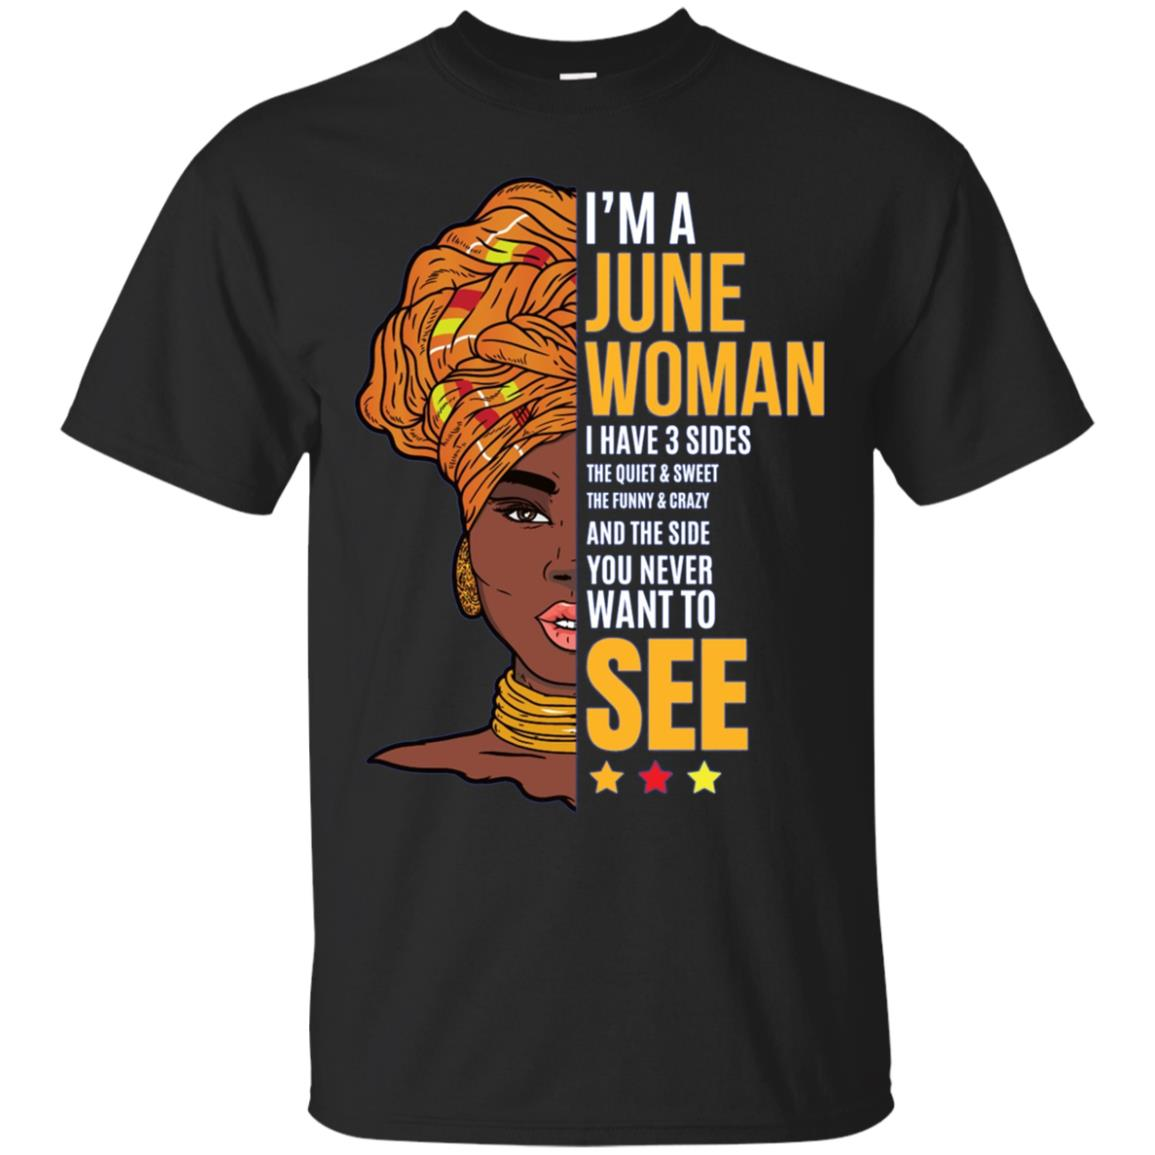 I'm a June Woman Long Sleeve Shirt - Zodiac Sign